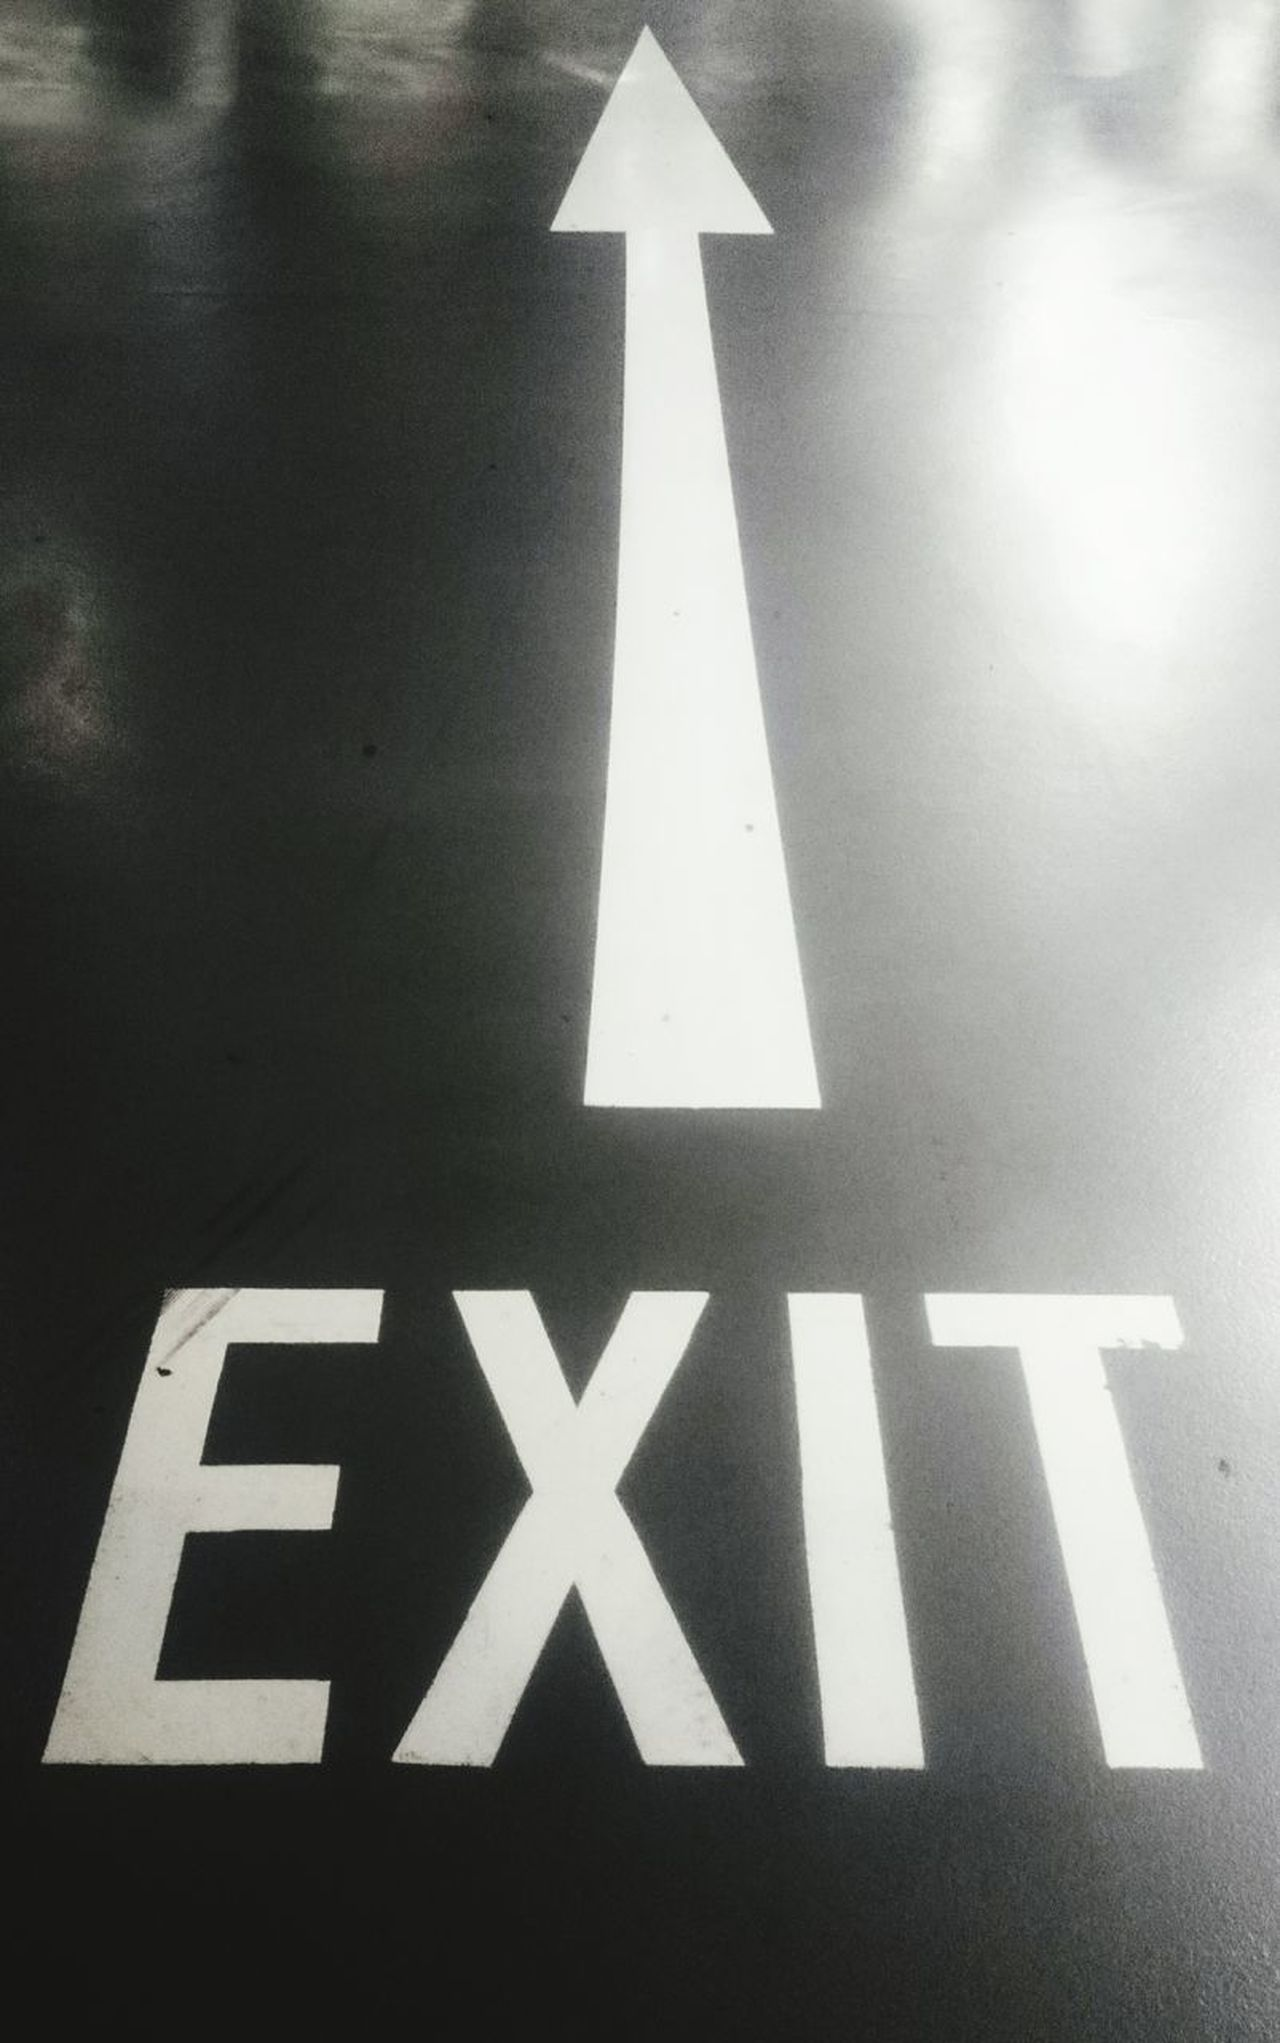 Direction arrow with exit sign on the road. Arrow Symbol Guidance Direction Communication Transportation No People Arrow Sign Arrow Asphalt Black Directional Sign Direction Exit Exit Sign Forward LINE Path Perspective Road Sign Street Urban Way Black And White